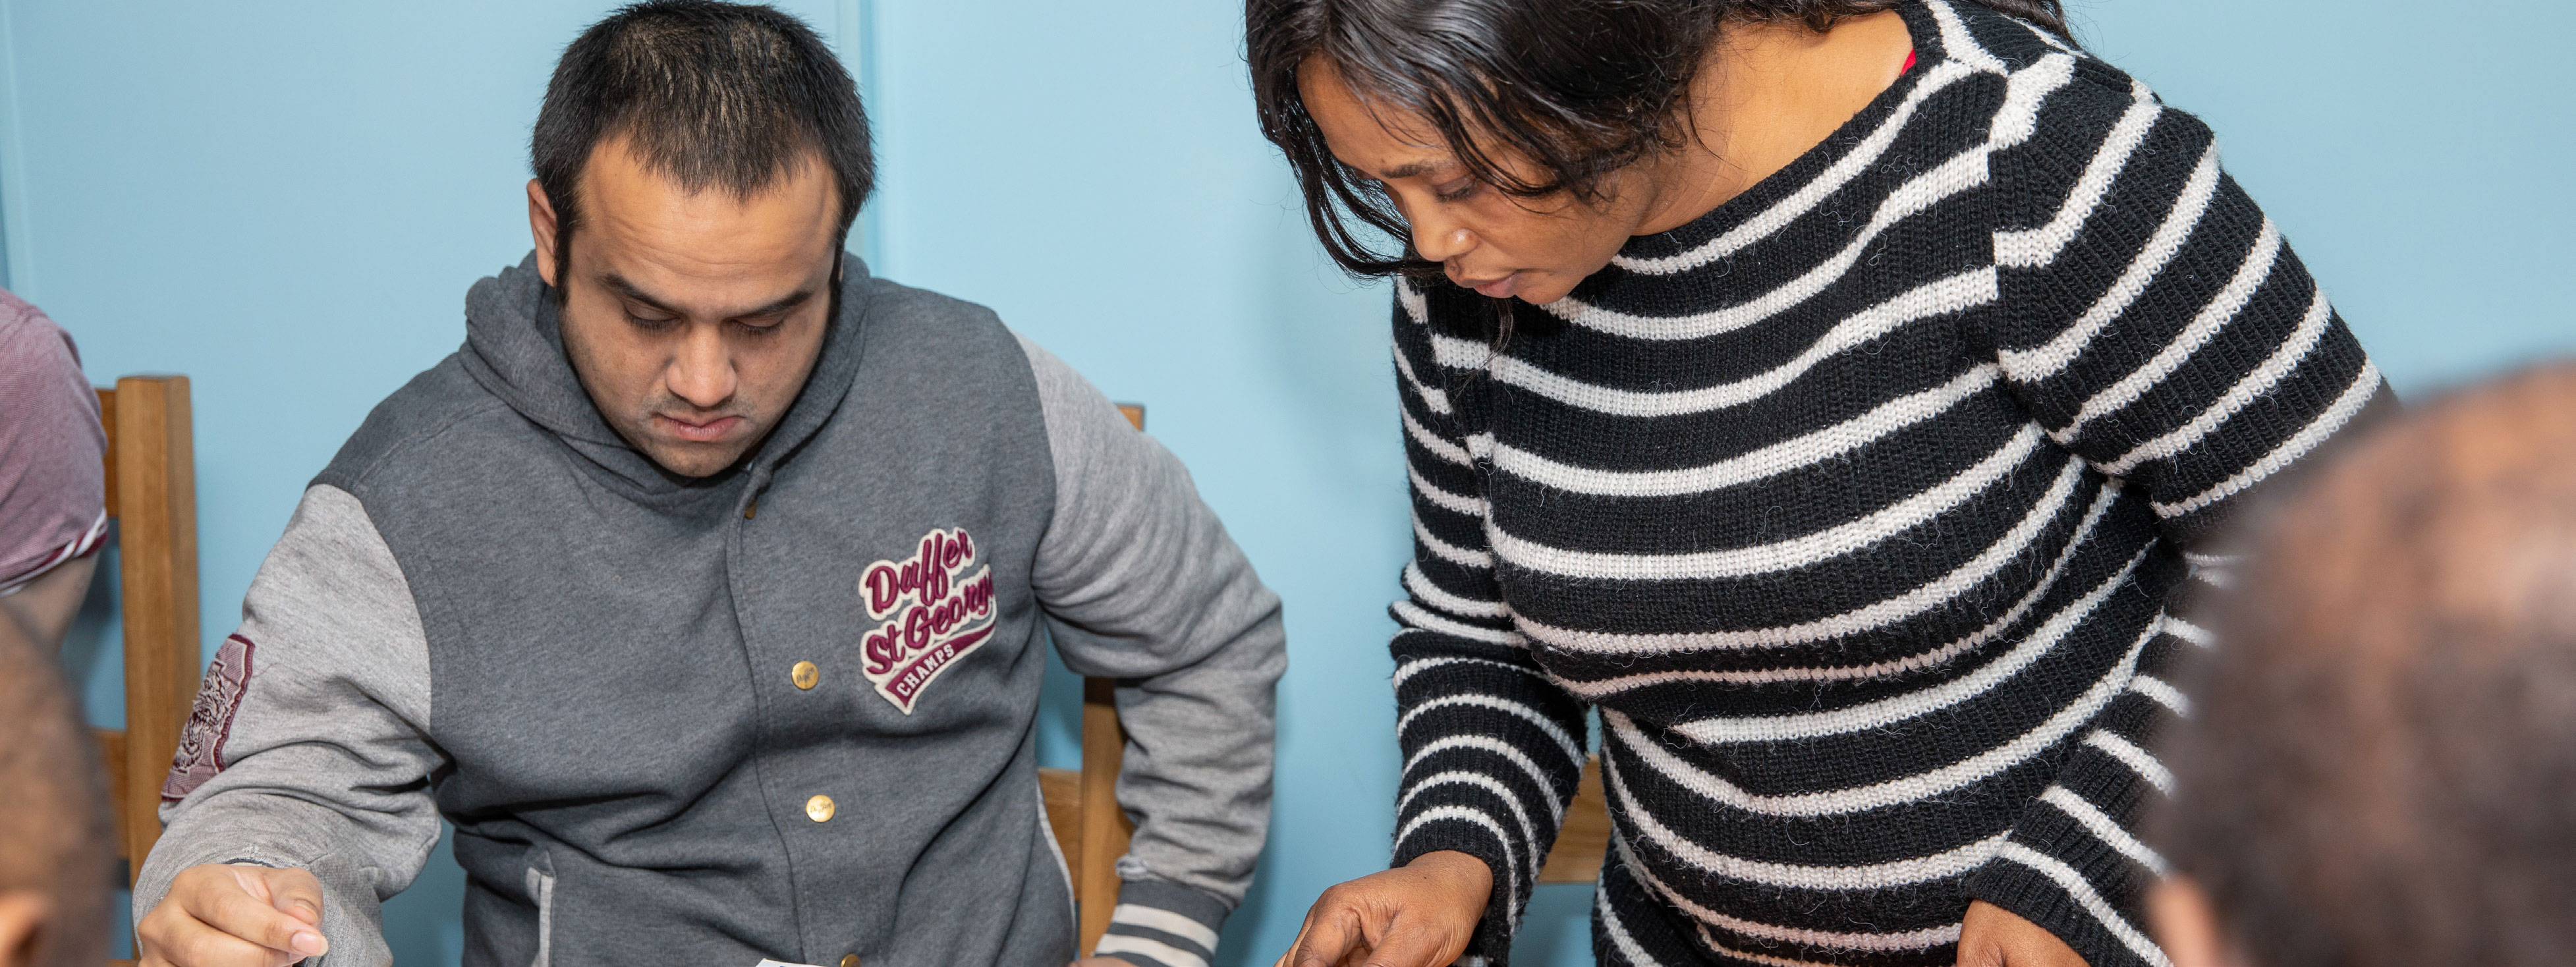 Carer and client working together